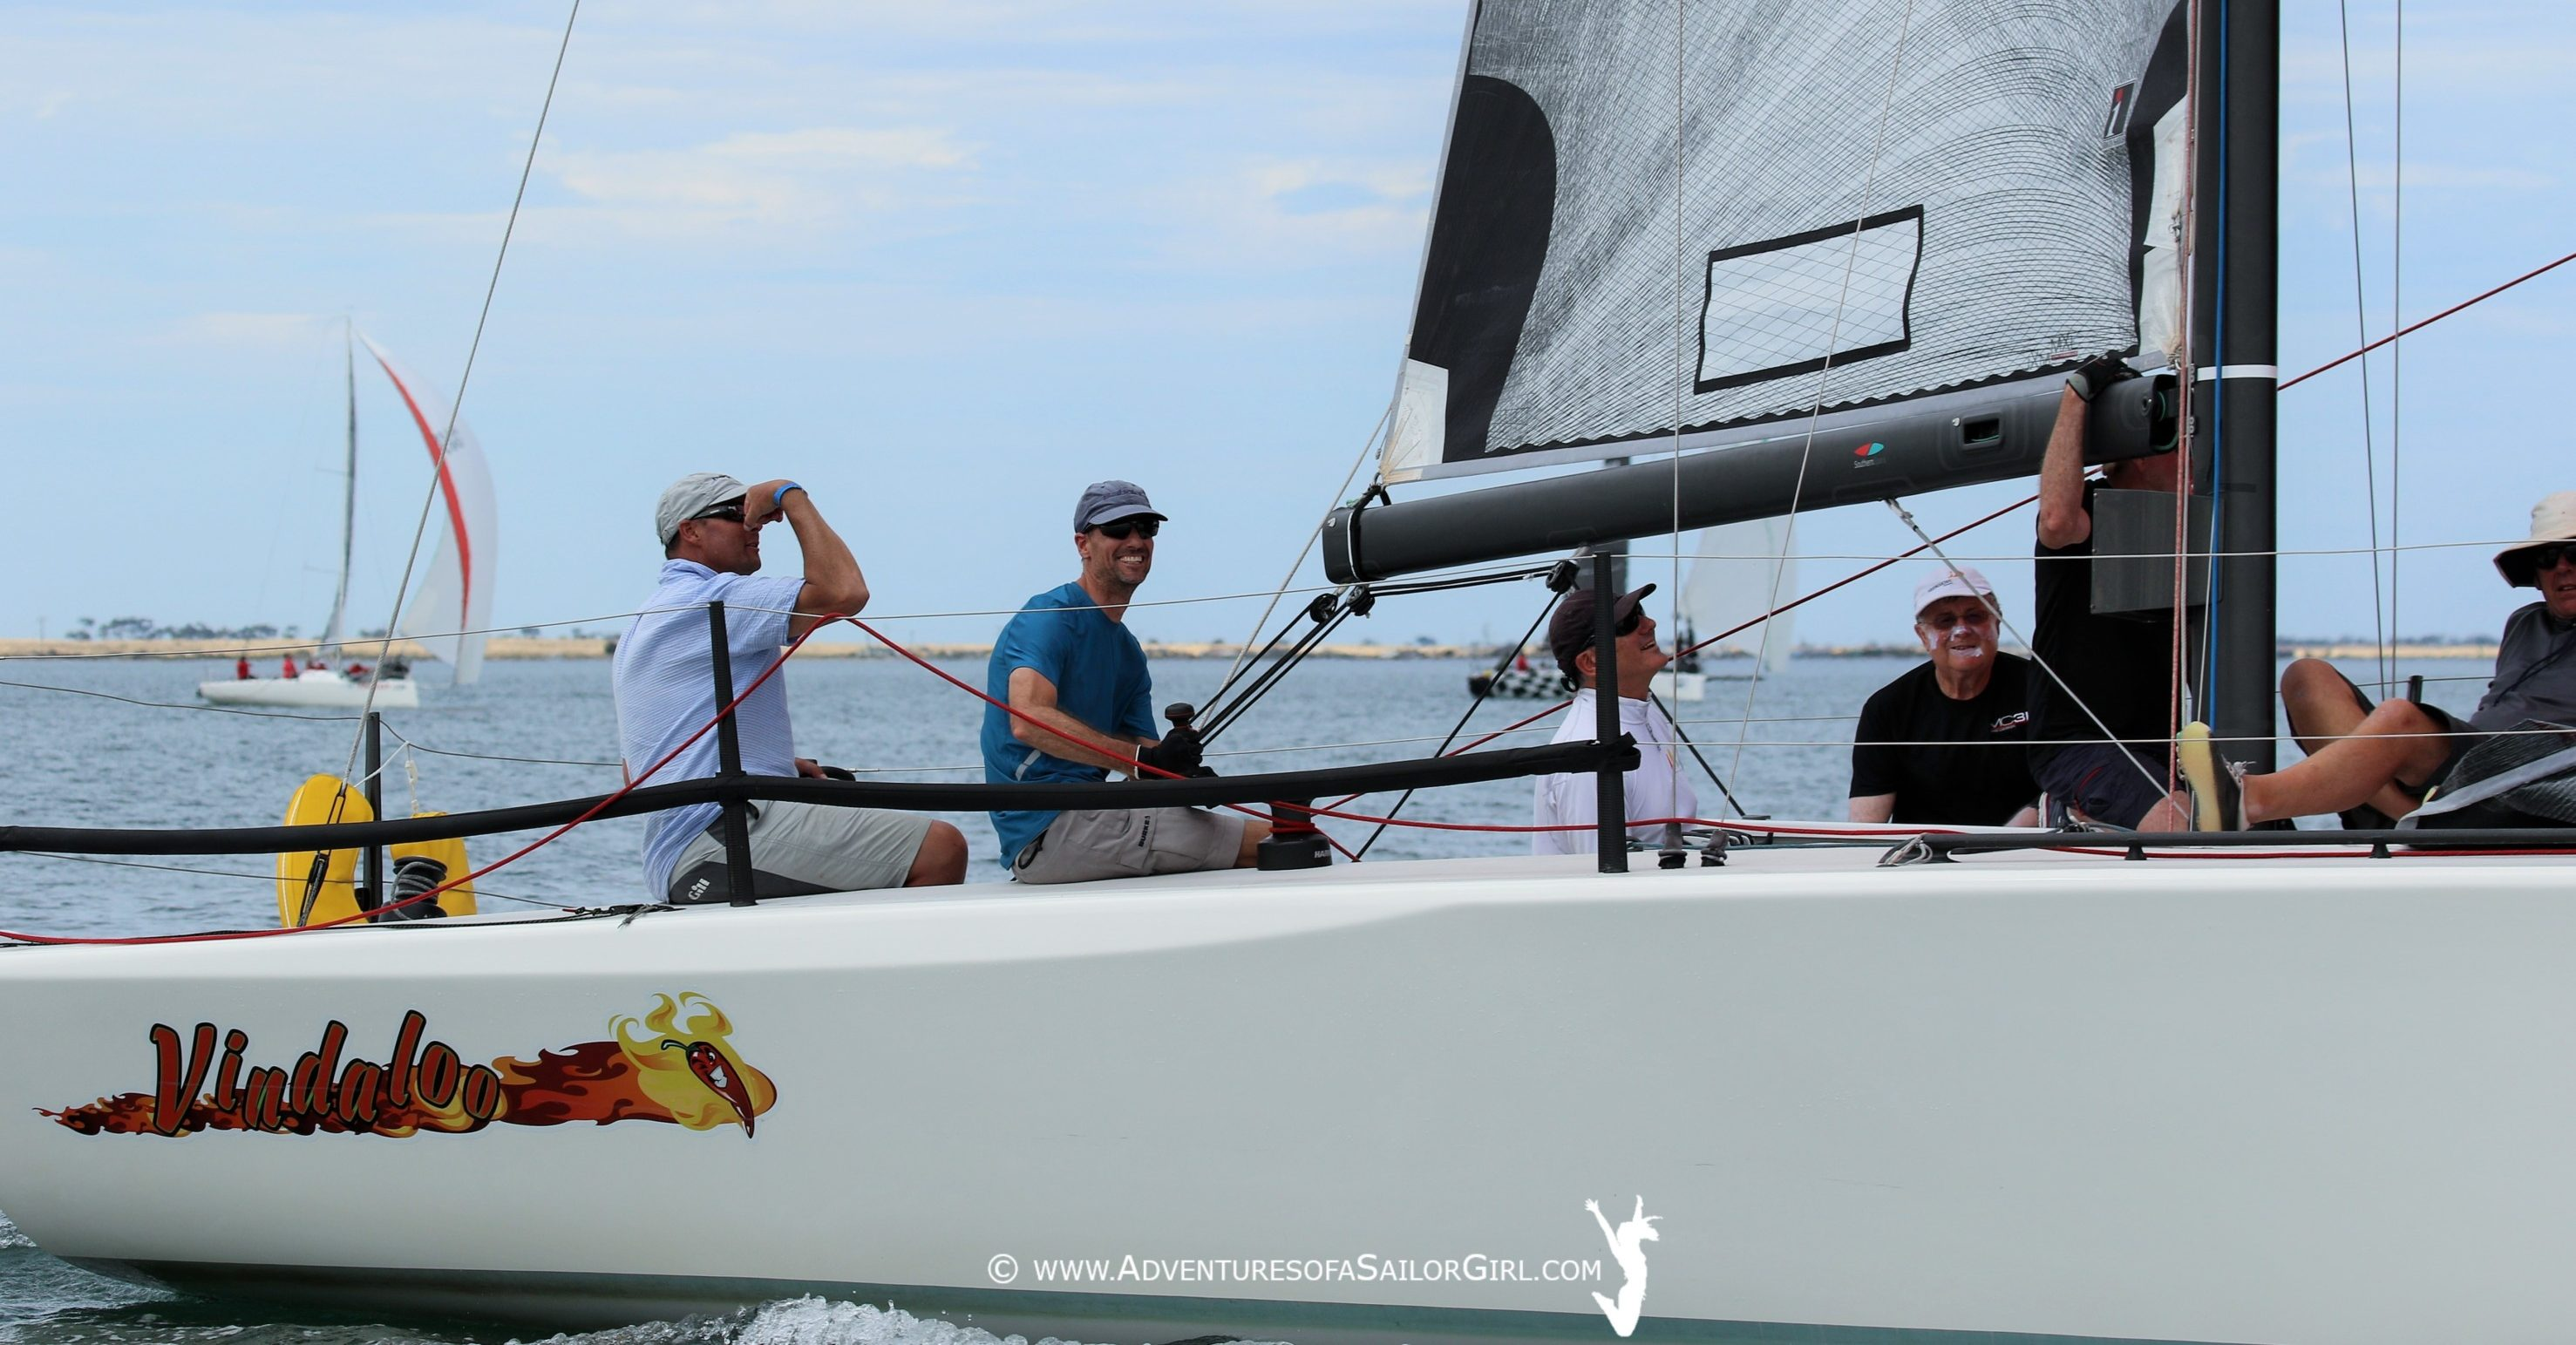 Festival of Sails | Opening regatta blog from the Sailor Girl | VIDEOS